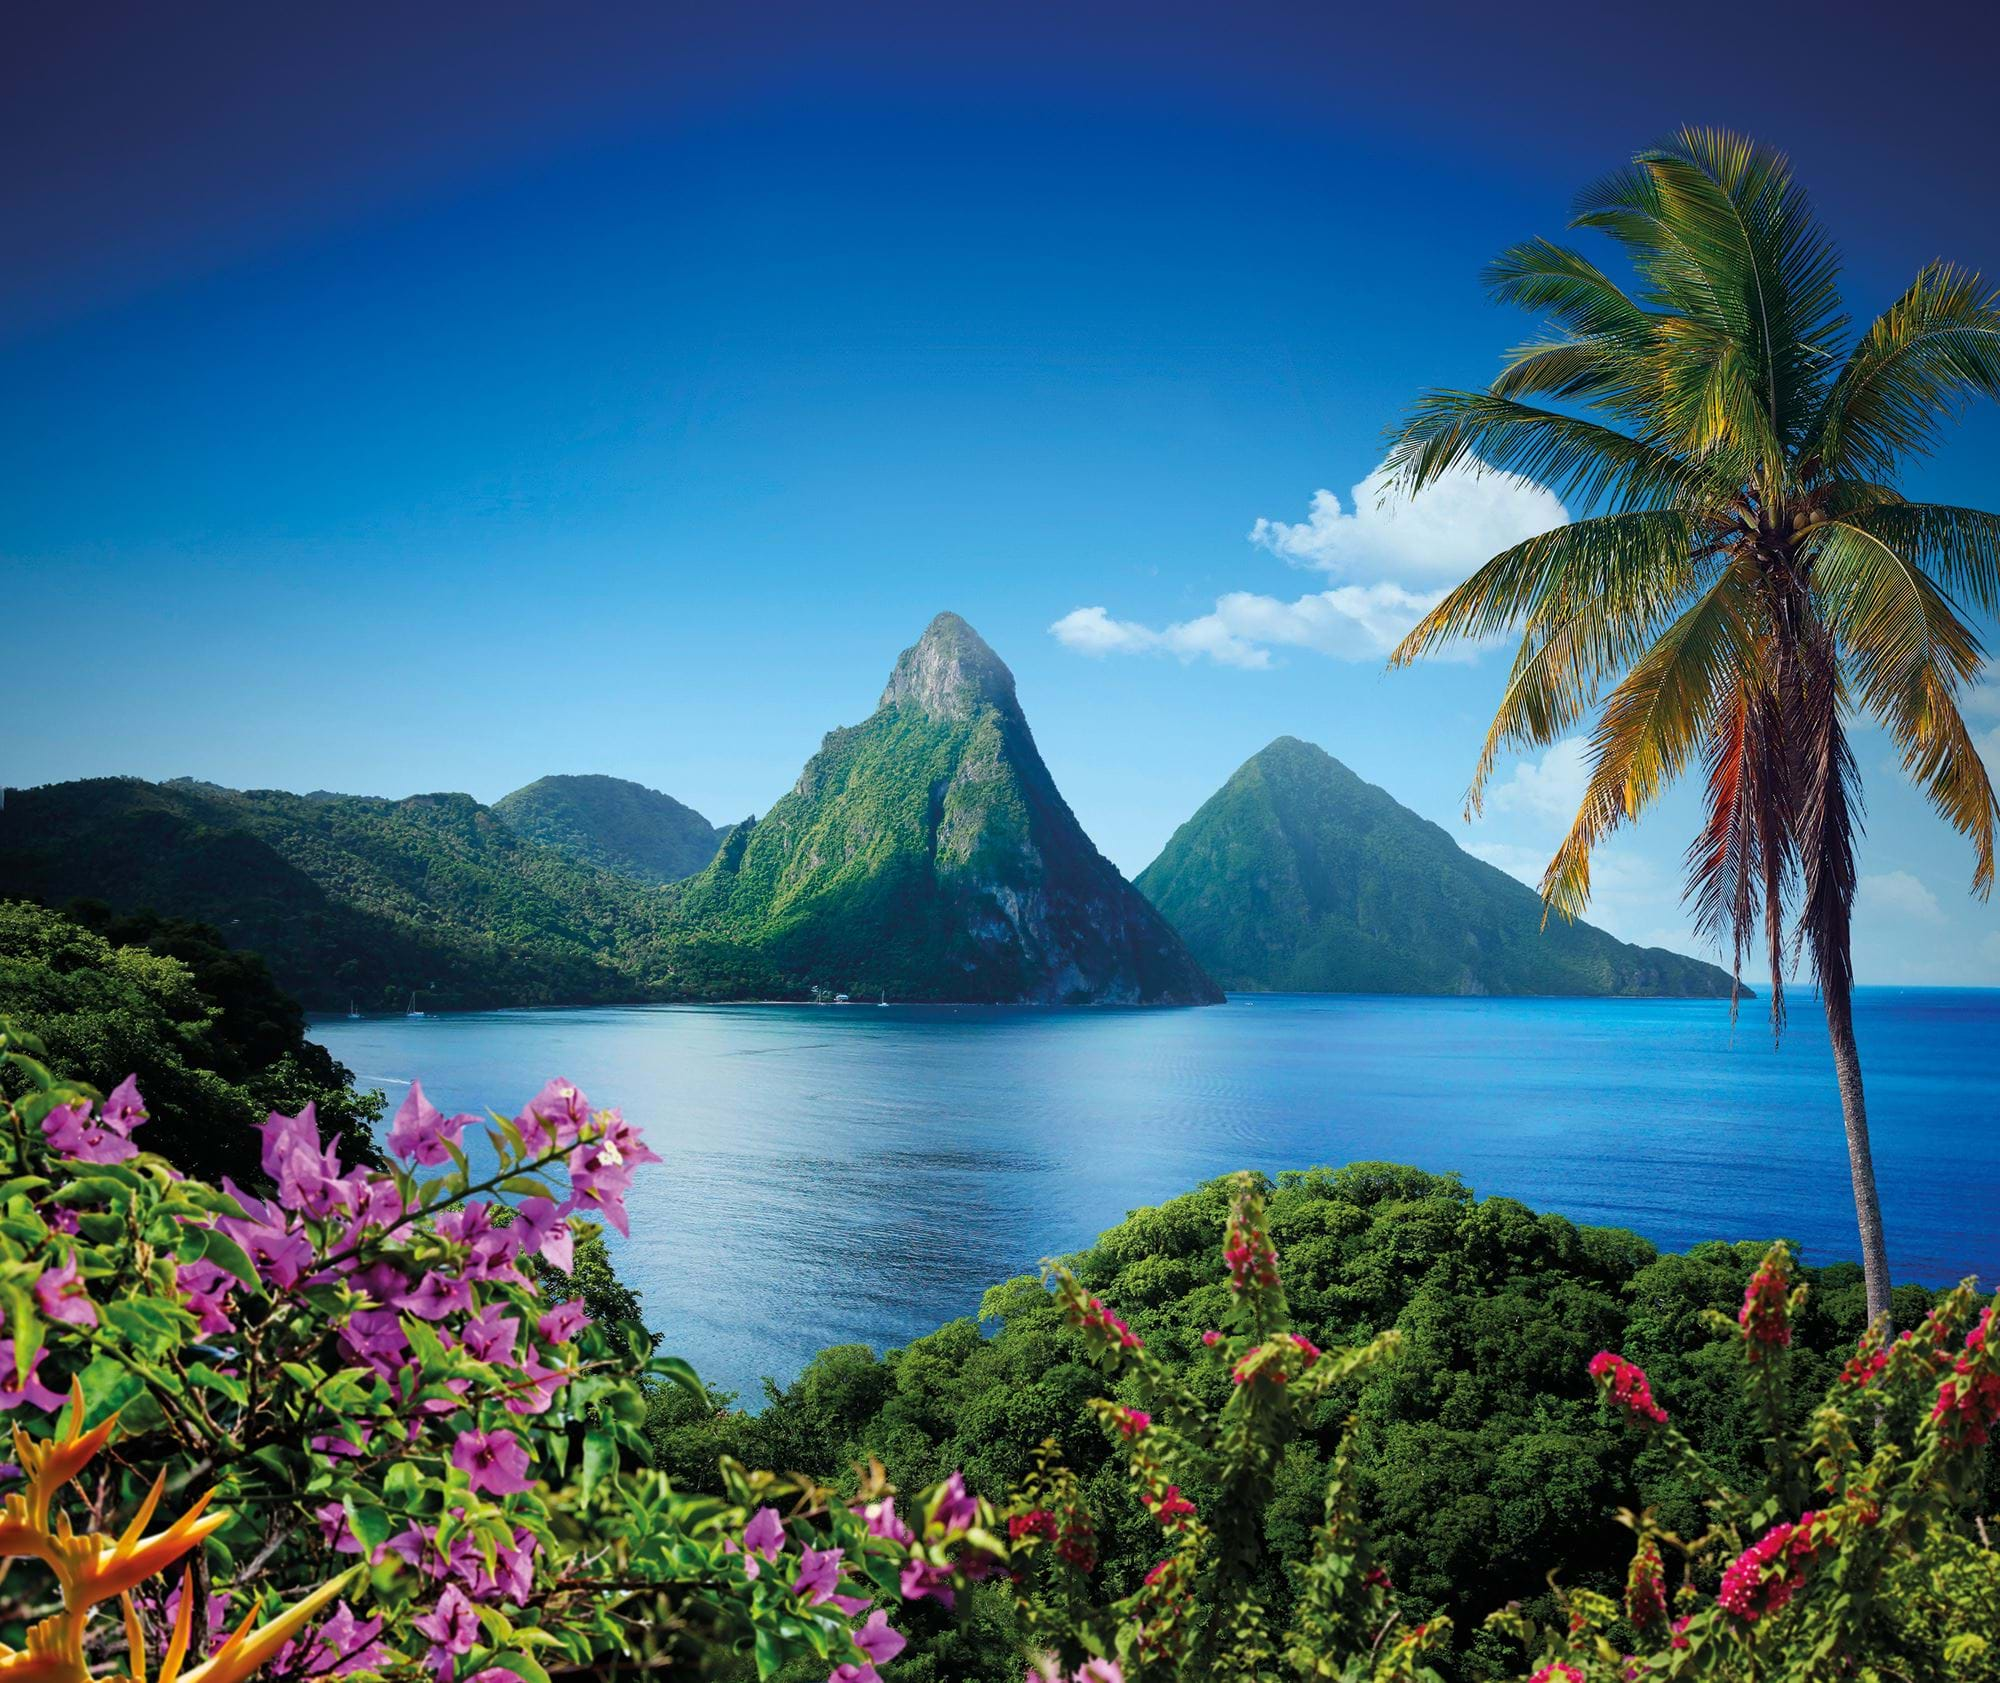 St Lucia, A vow renewal ceremony in tune with its natural surroundings